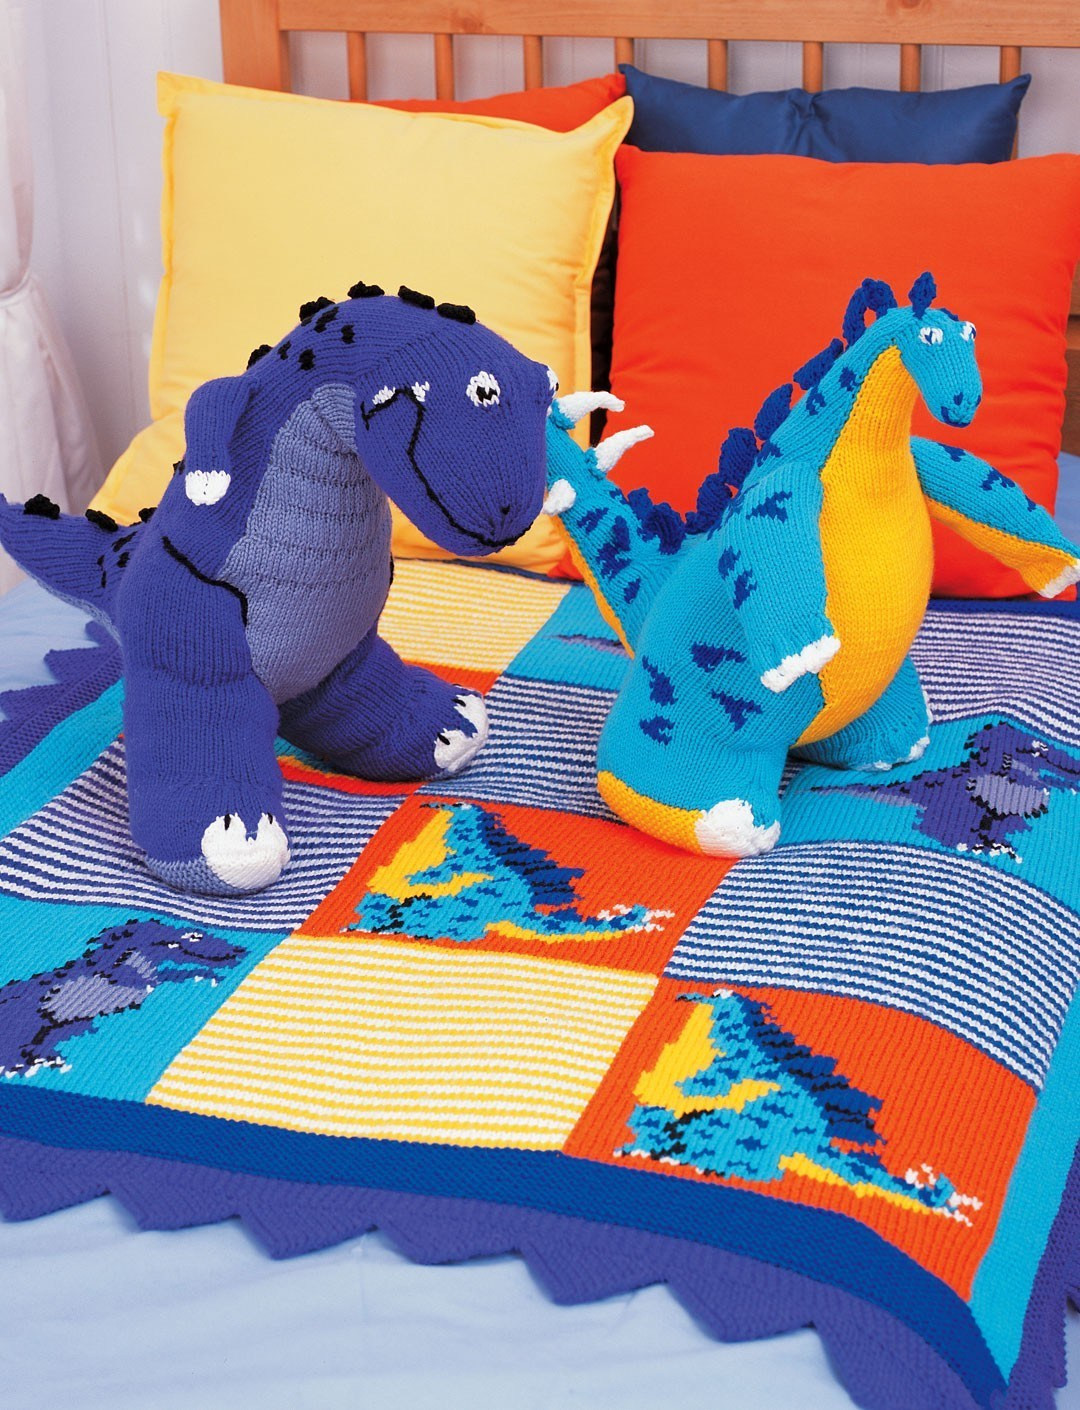 Crochet Dinosaur Blanket Best Of Fun Afghan Knitting Patterns Of Awesome 40 Images Crochet Dinosaur Blanket